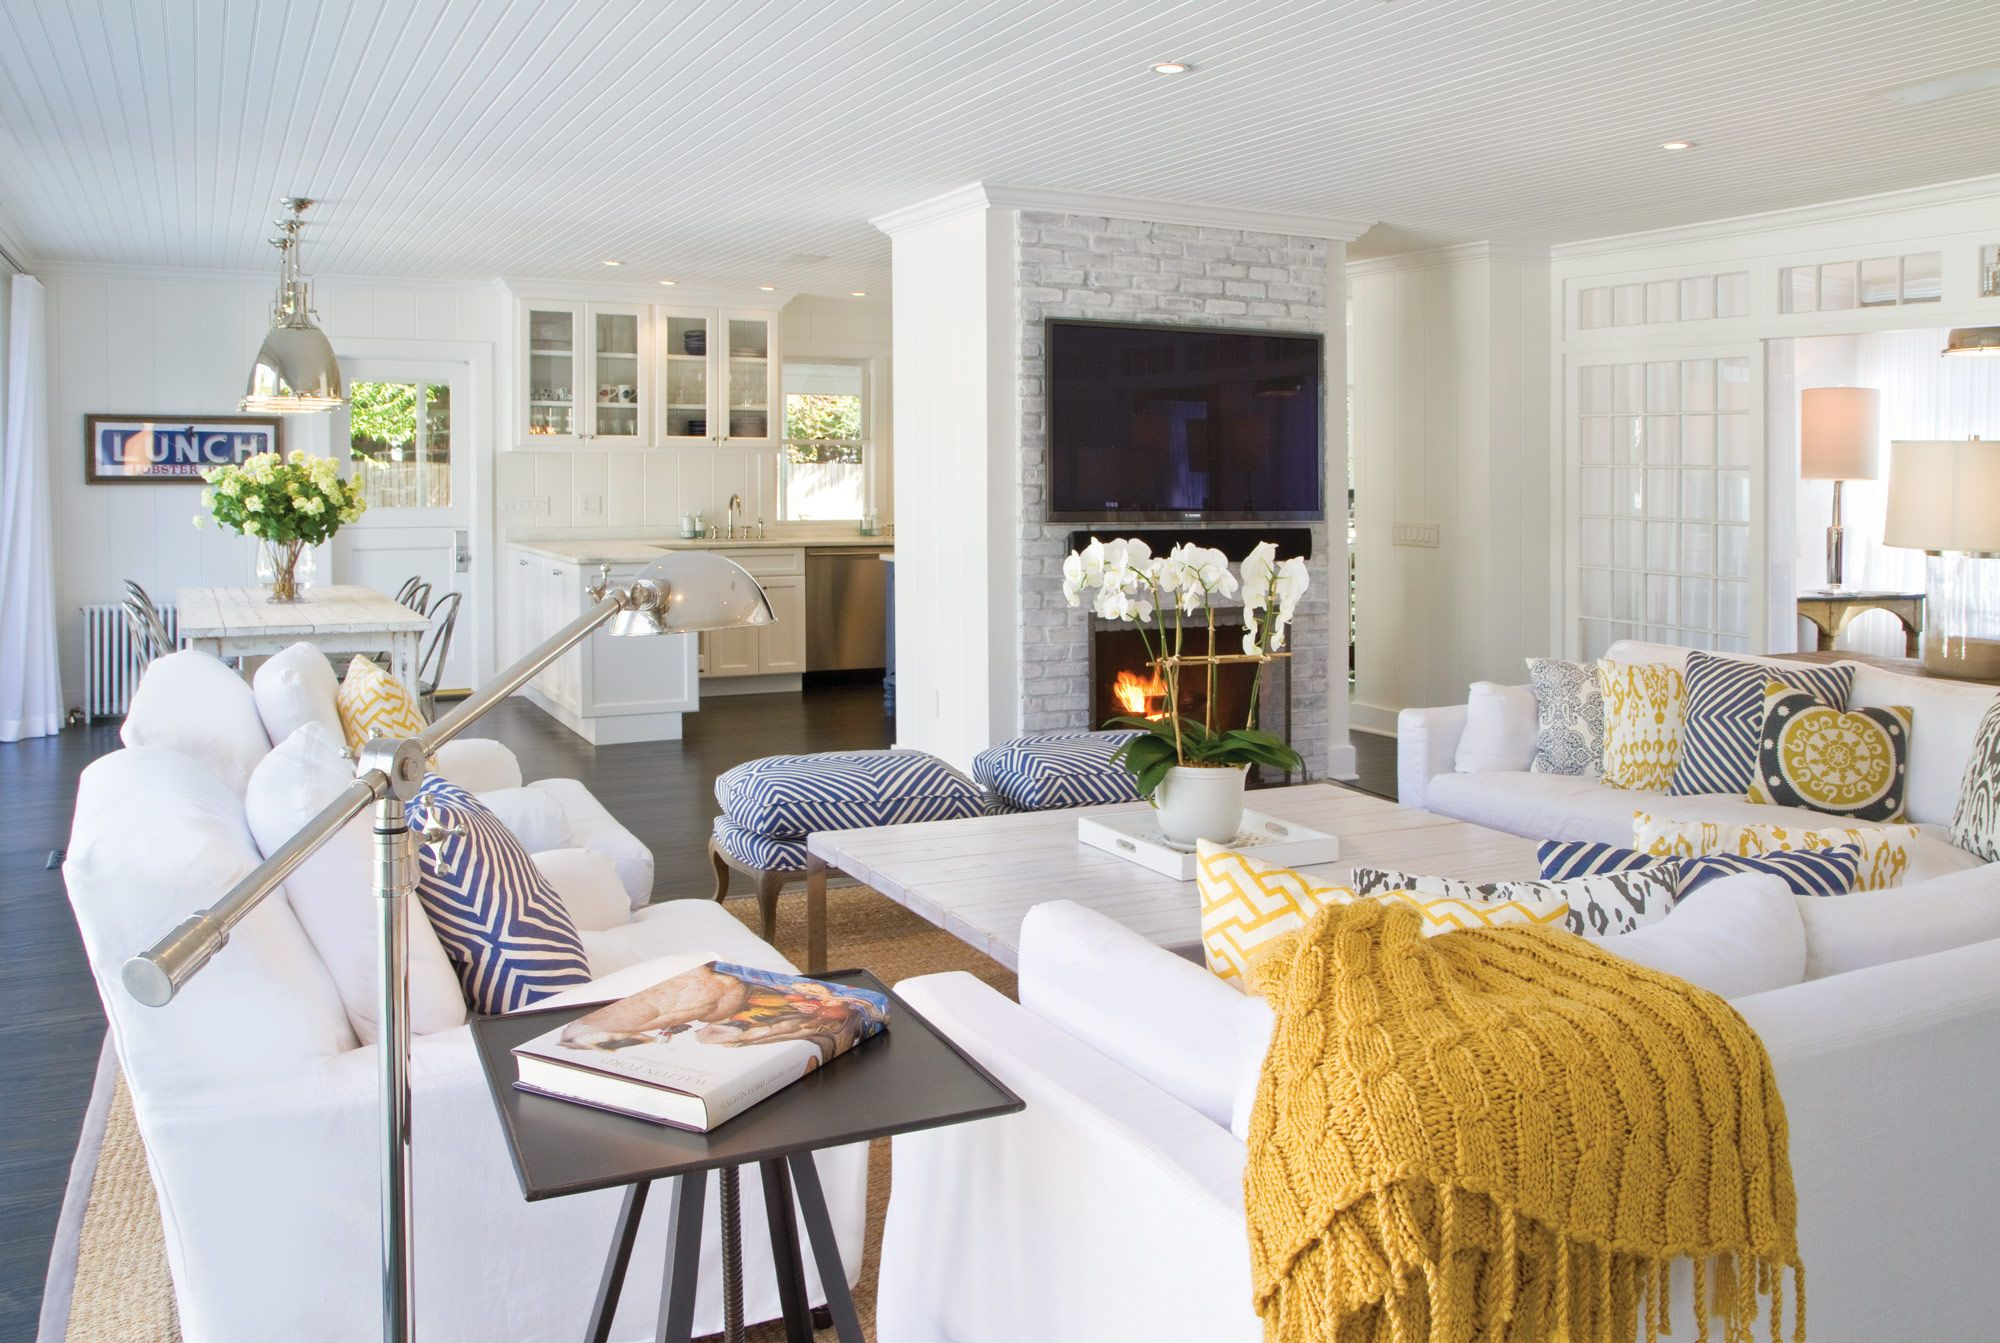 East Hampton Beach House with a rug from Sacco Carpet | Sacco Homes ...